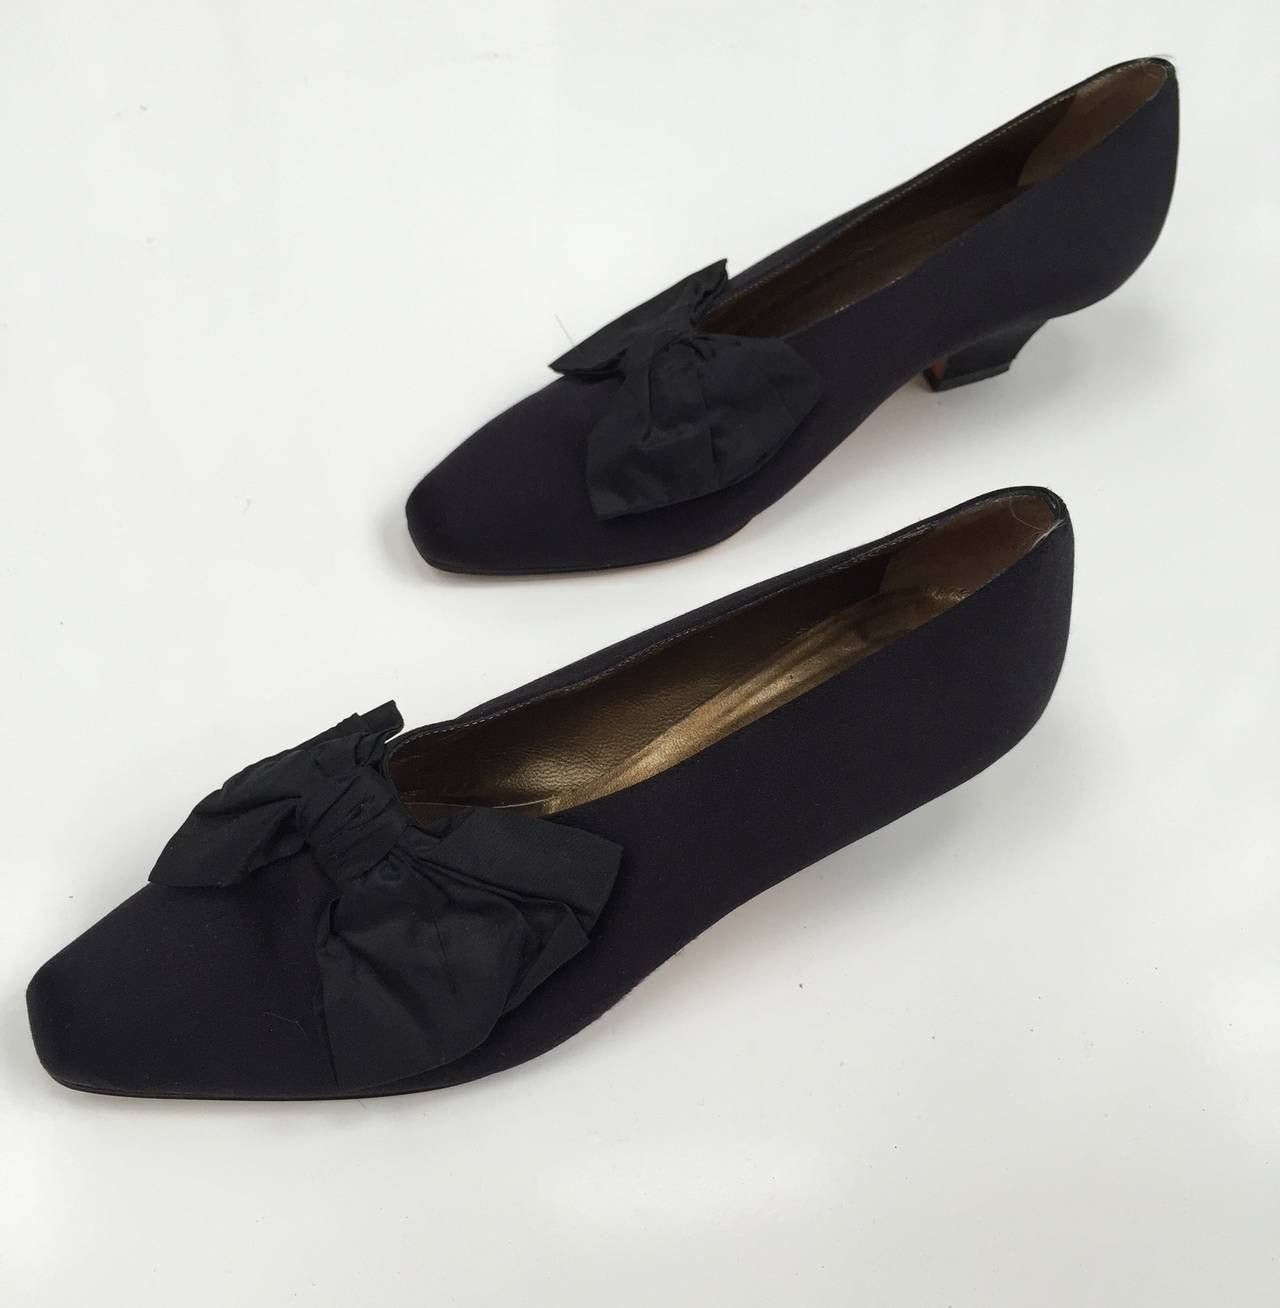 Yves Saint Laurent 80s Black Satin With Bow Evening Shoes